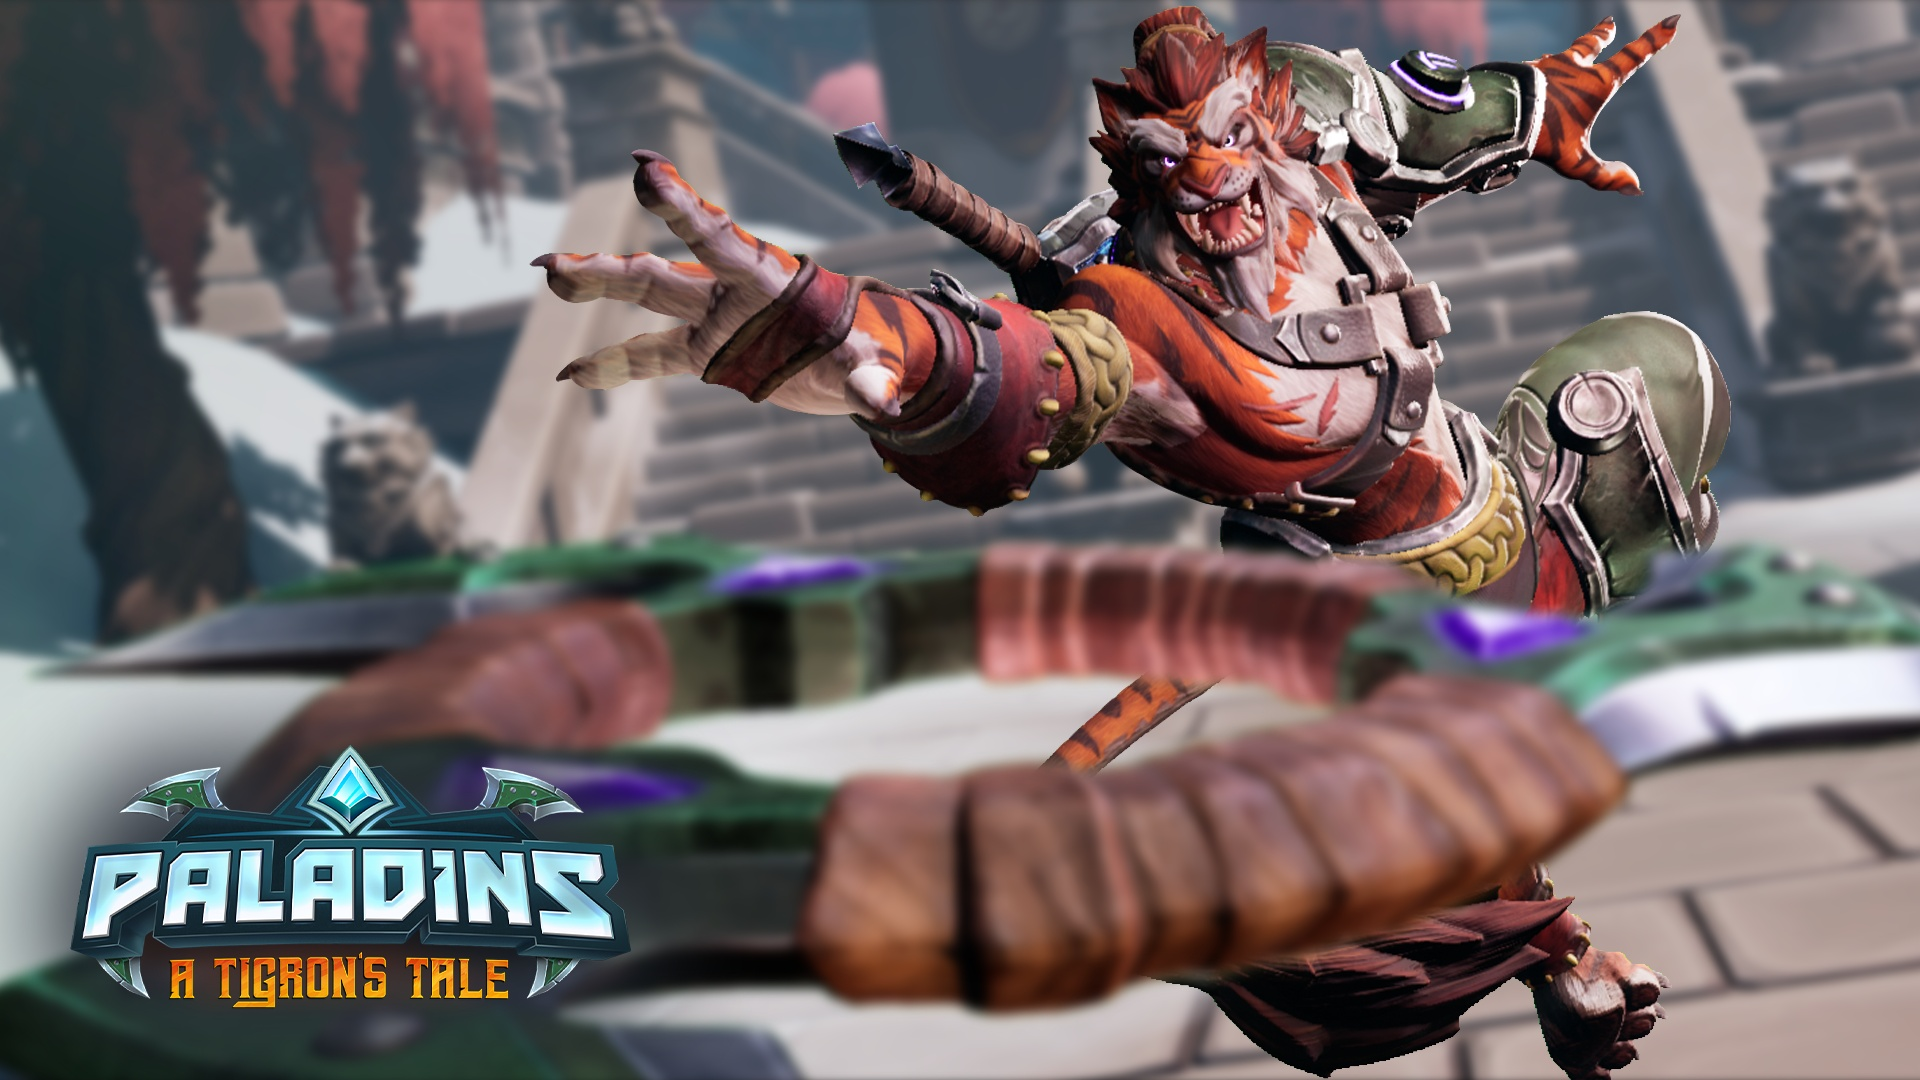 Video For Paladins Season 3 Begins with New Champion Release, Community Battle Pass